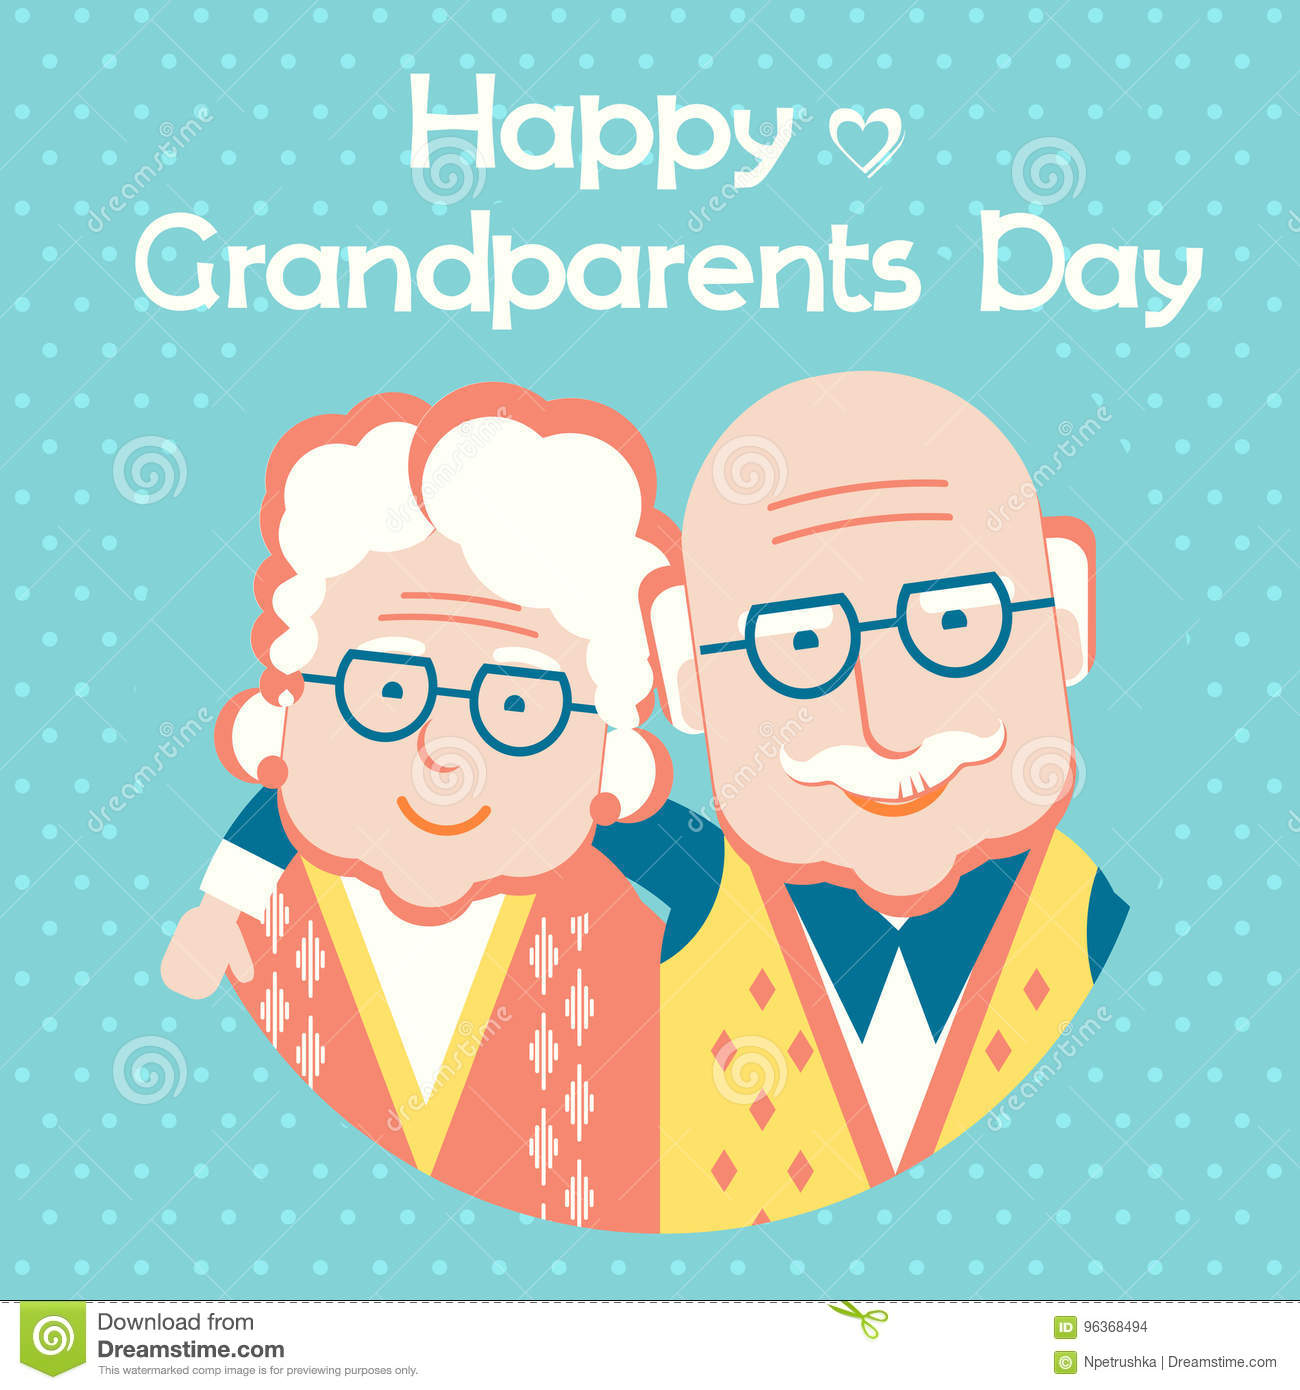 Happy Grandparents Day card with text.Vector flat style